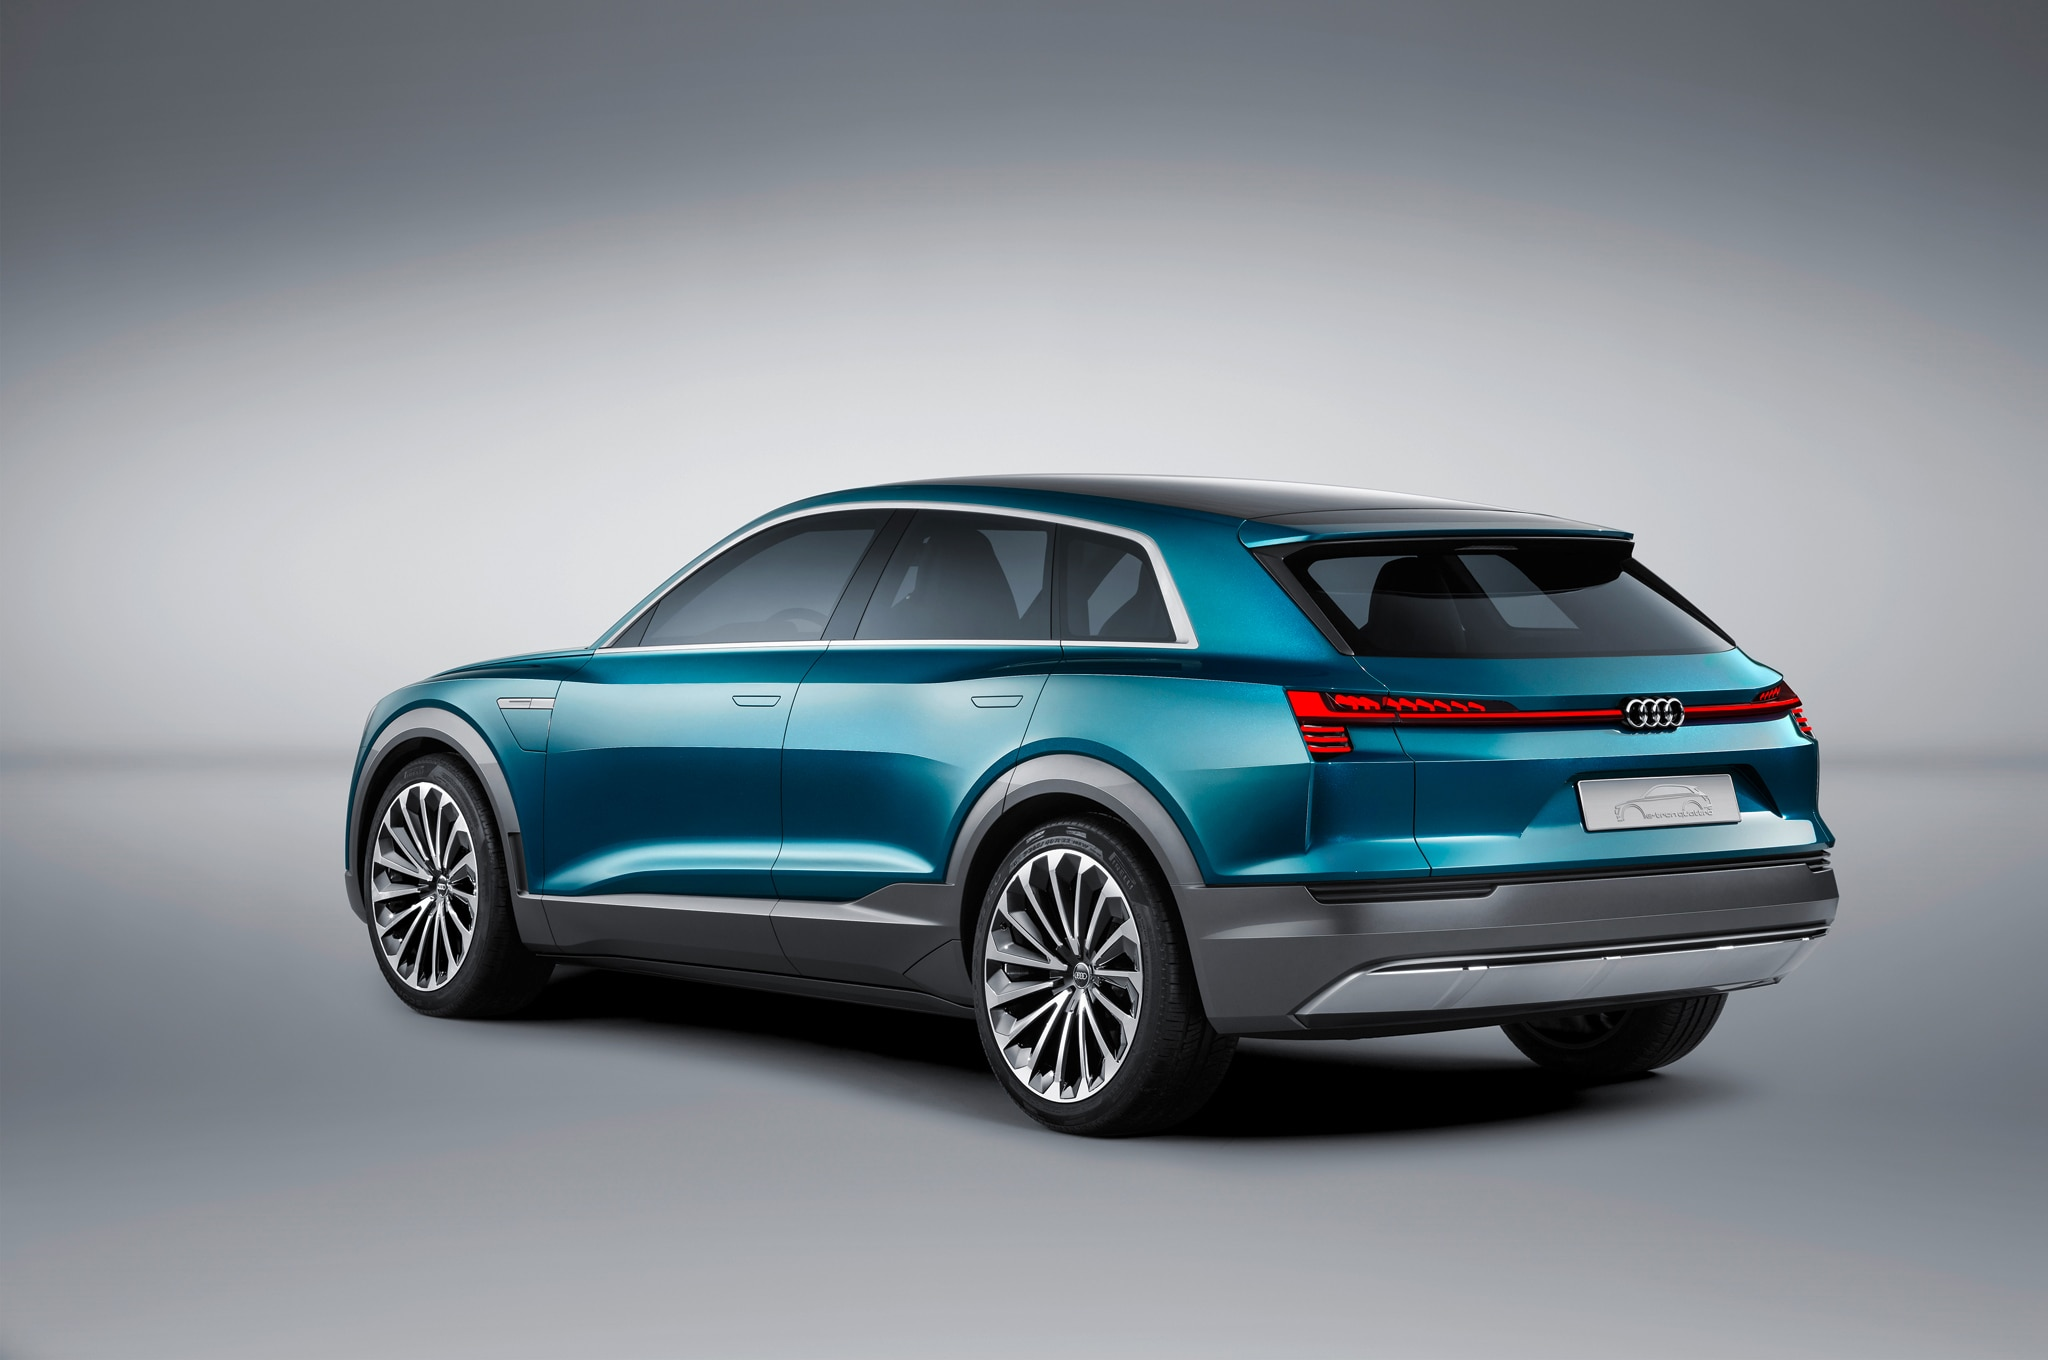 Lovely We Do Know That The New All Electric Audi SUV Will Ride On The Same MLB  Platform As The Audi Q7. As It Will Fit In Between The Q7 And Q5 In ...